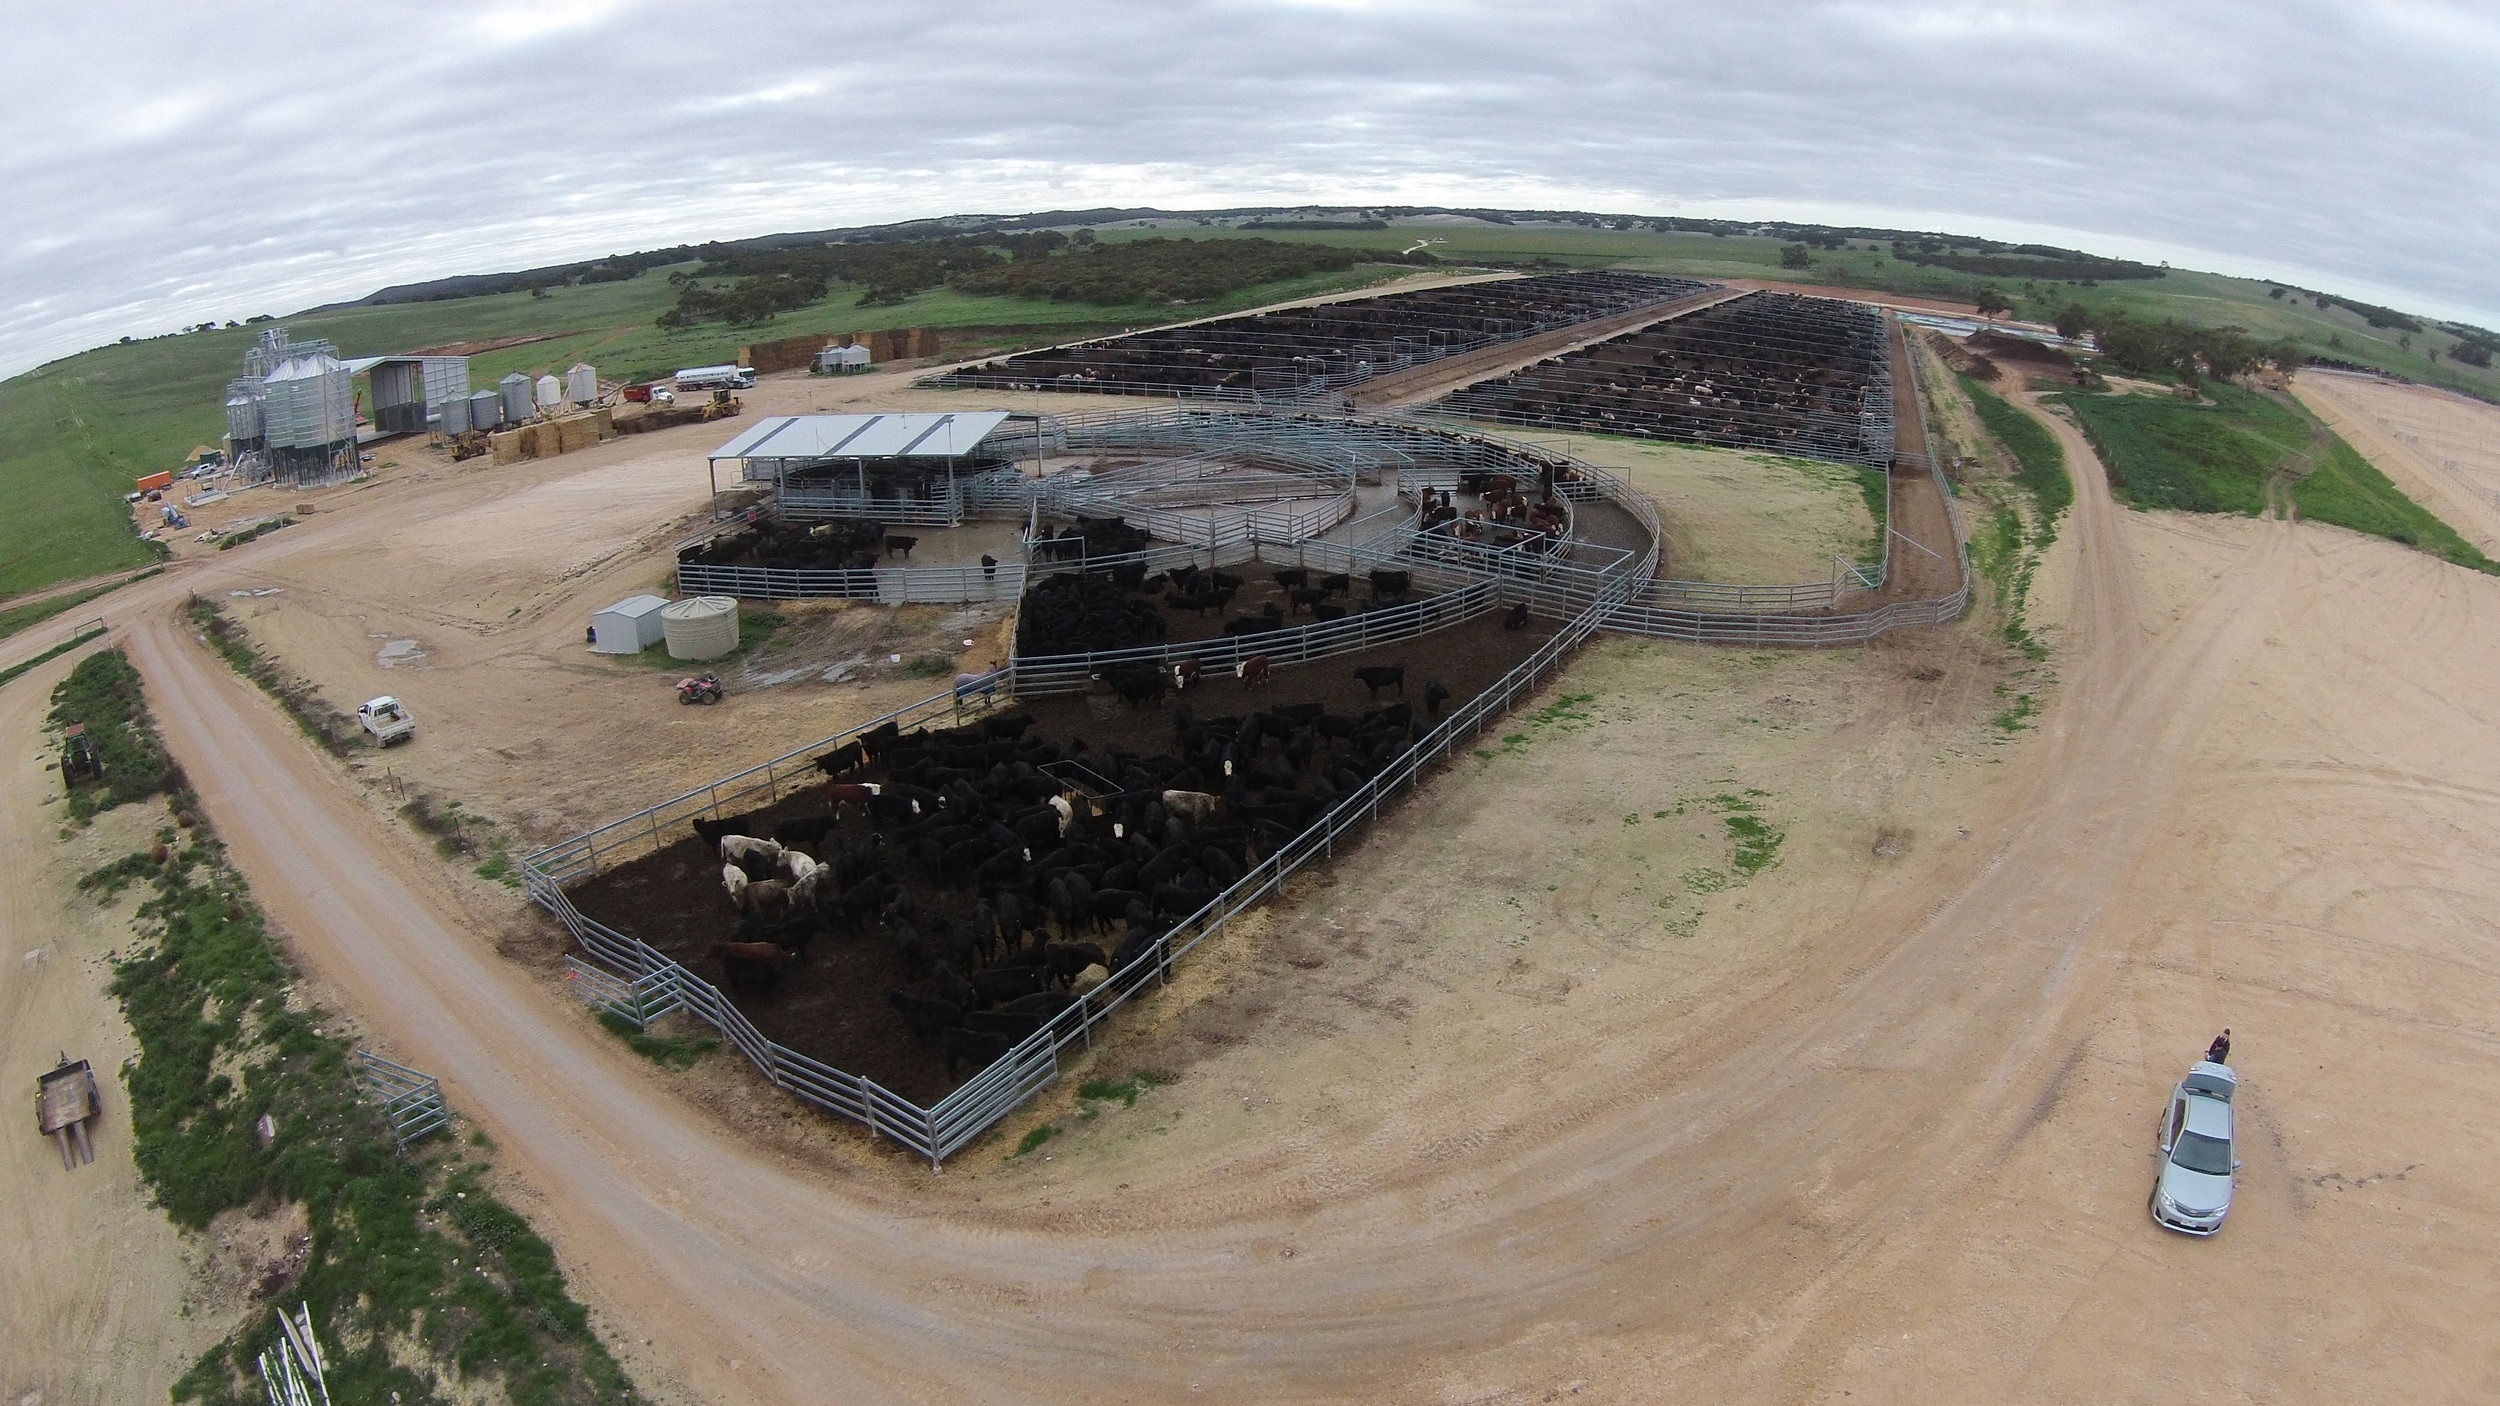 Original feedlot and induction centre